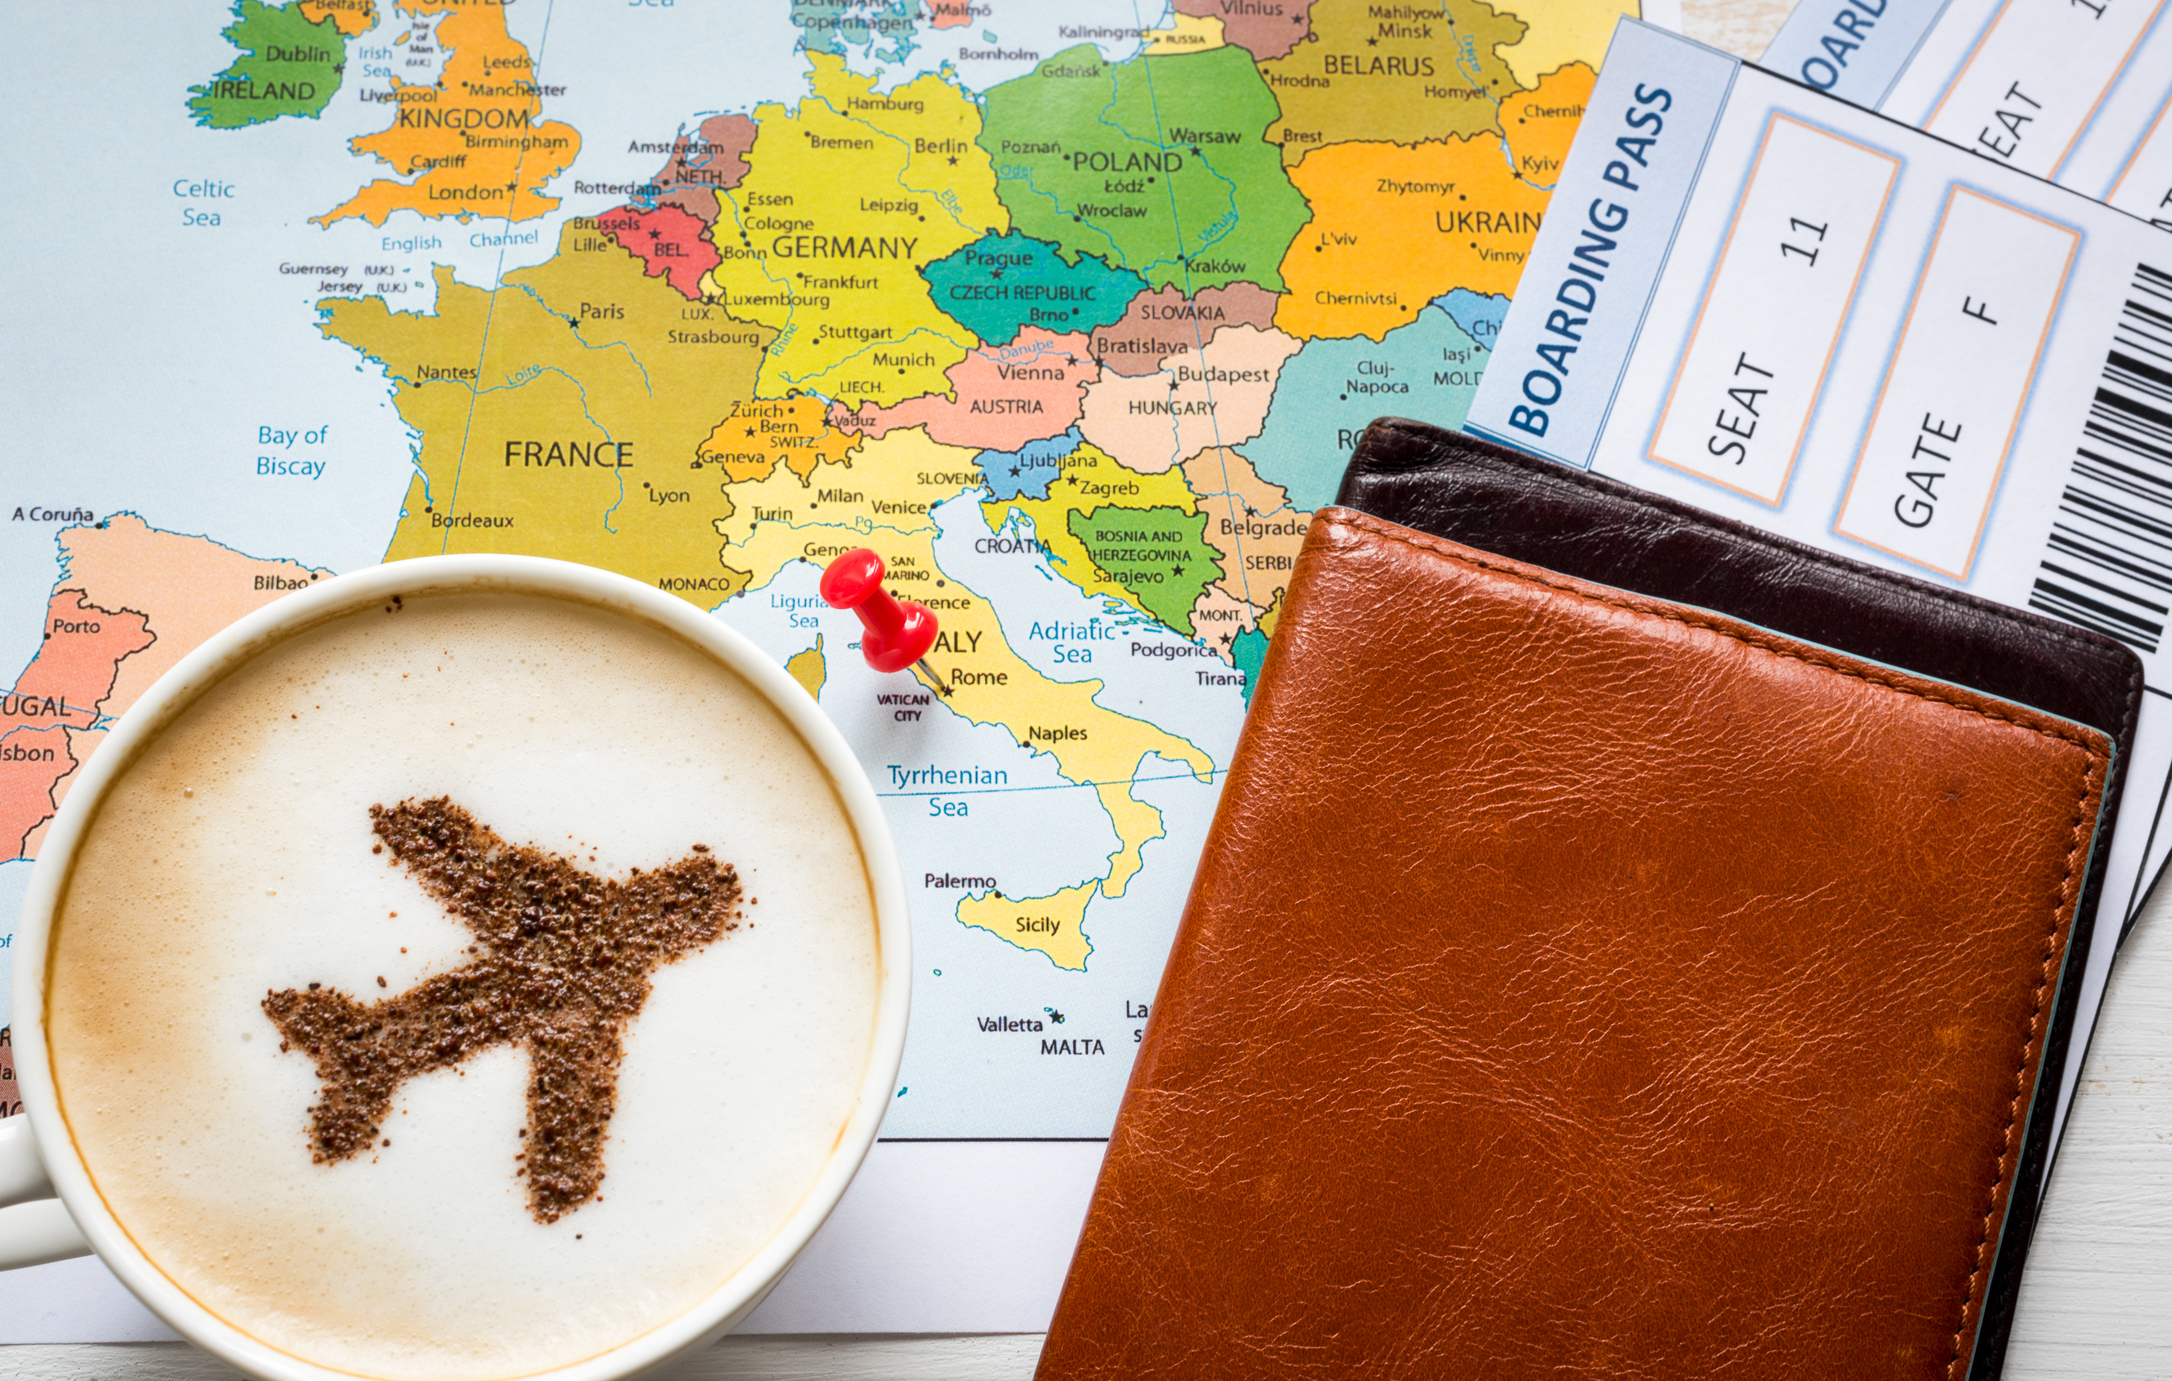 A coffee cup with a plane in the milk sitting on top of a map and next to airline tickets